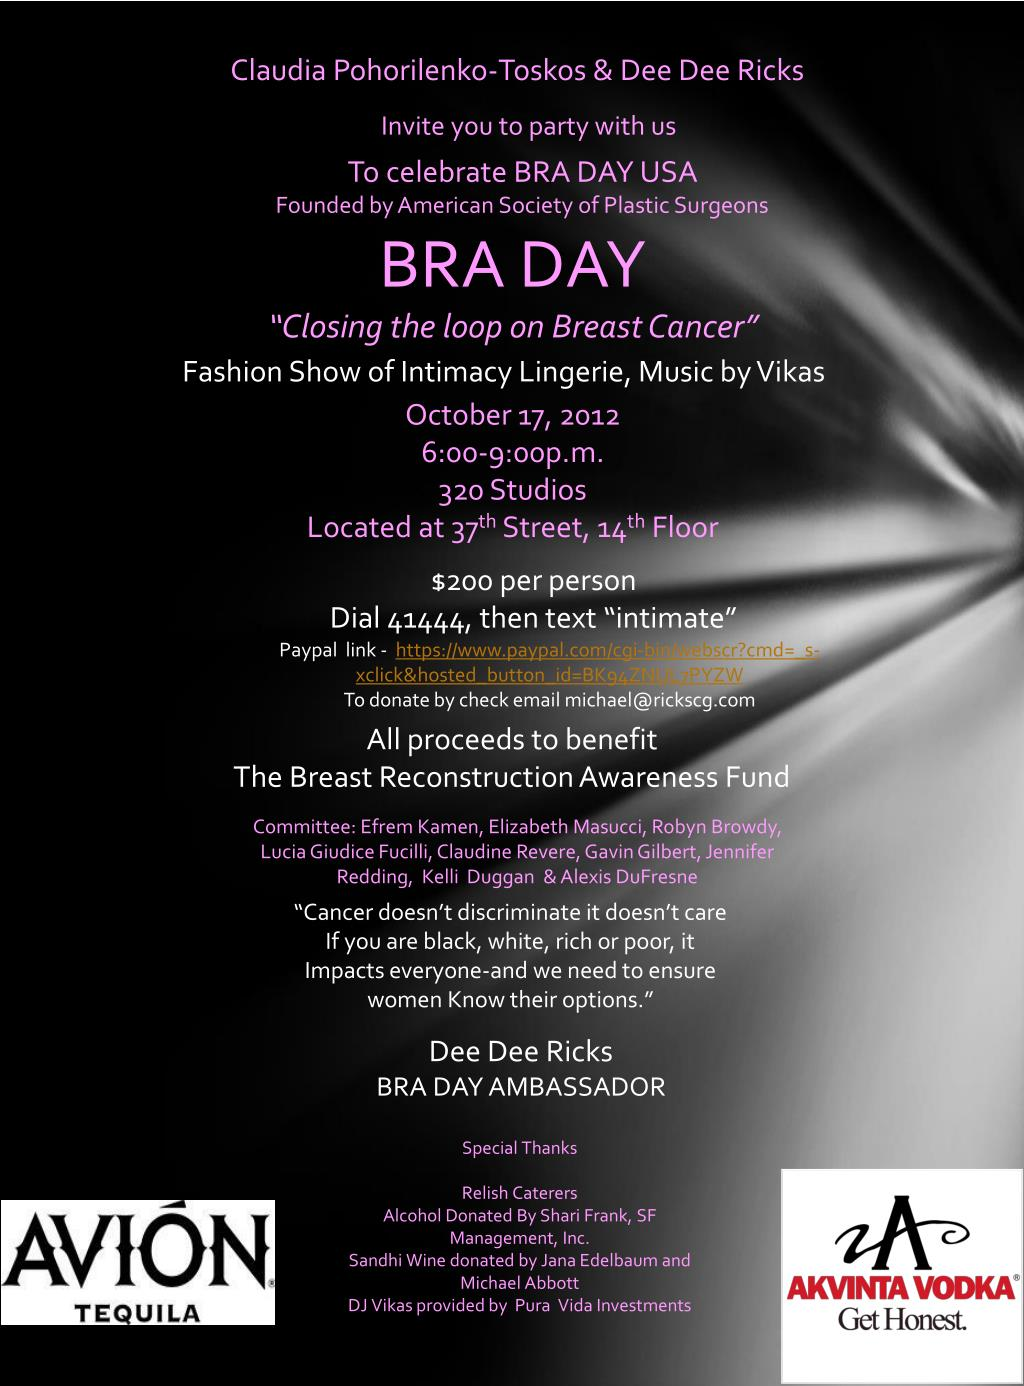 Ppt Bra Day Closing The Loop On Breast Cancer Powerpoint Presentation Id 1616861